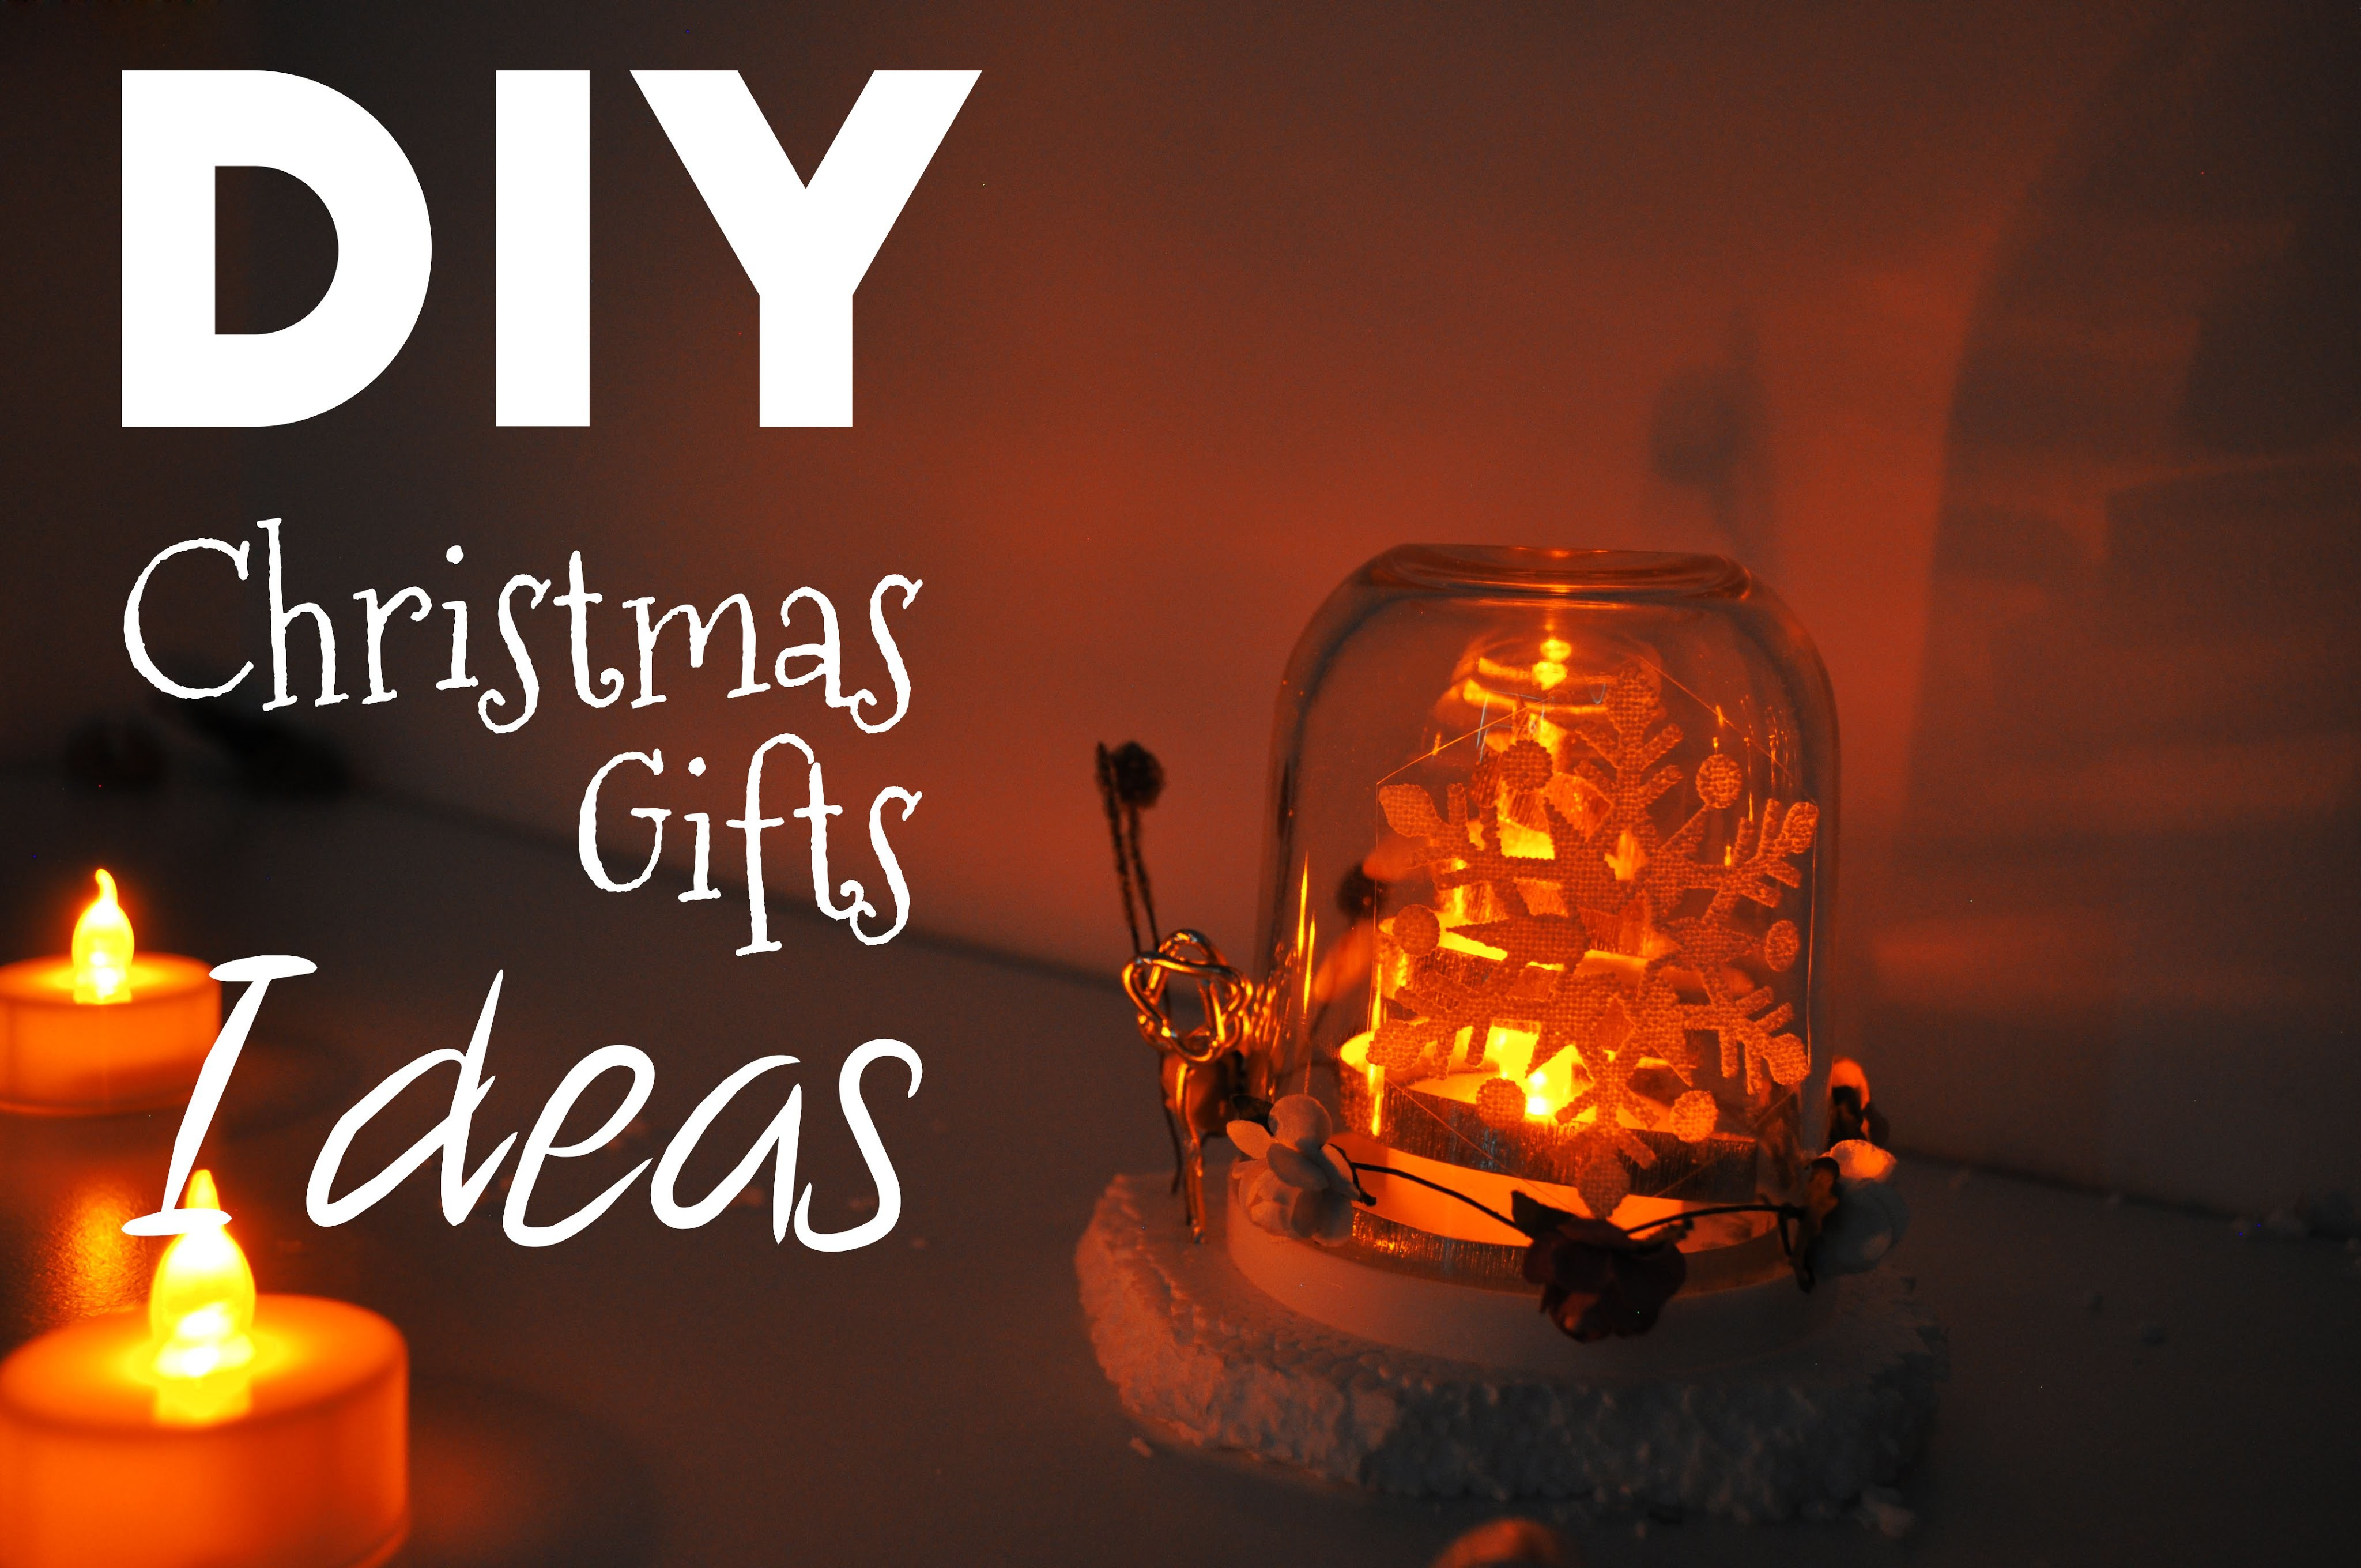 DIY Christmas Gift Ideas- Candle holder using Nutella Spread Jar!